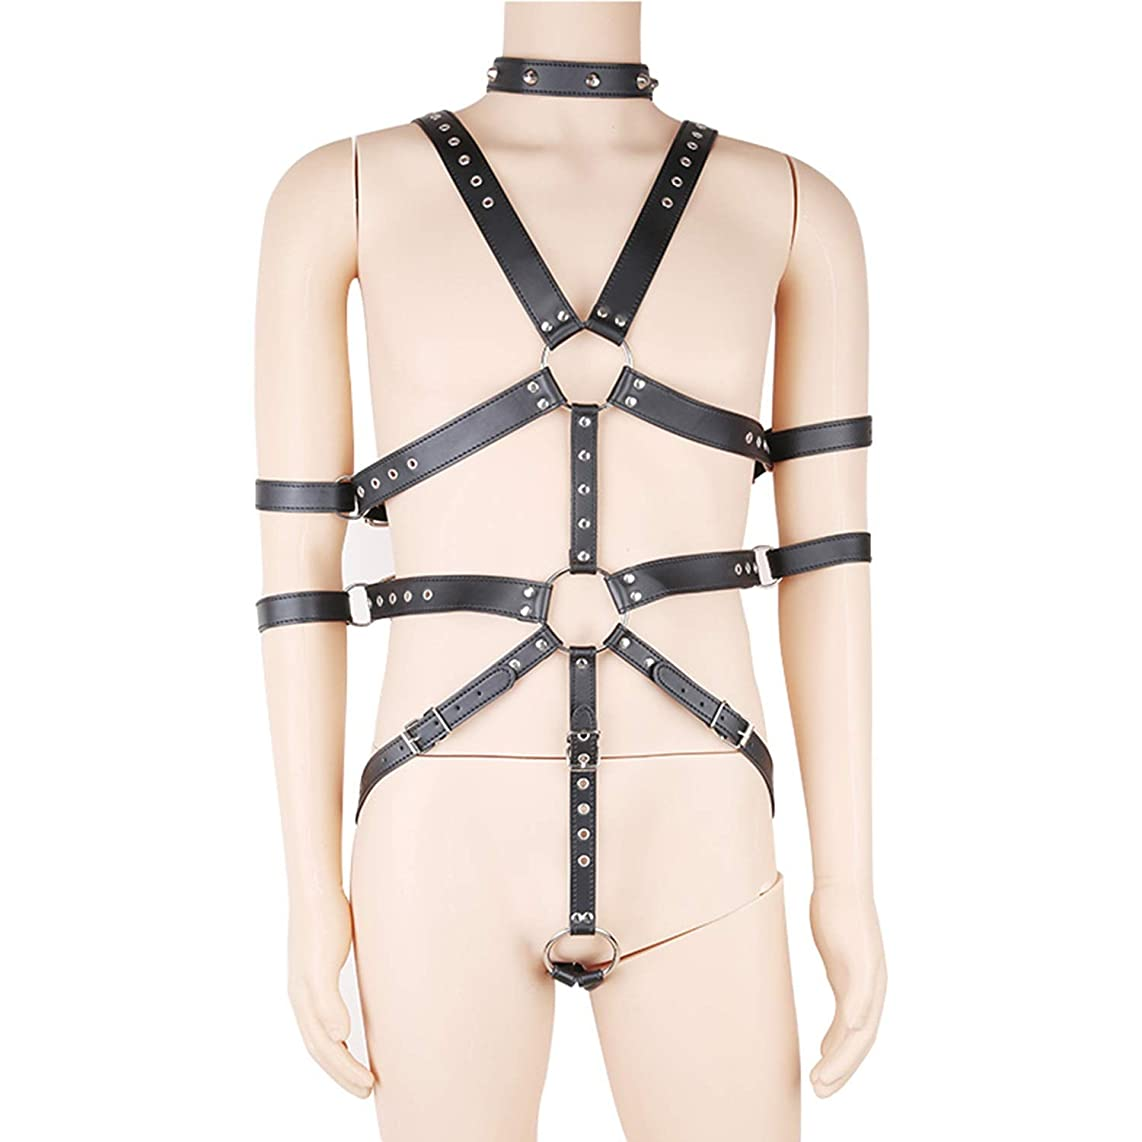 NISHISHABI Men's Knights Leather Body Chest Harness Shoulder Guard Armour Costumes Black